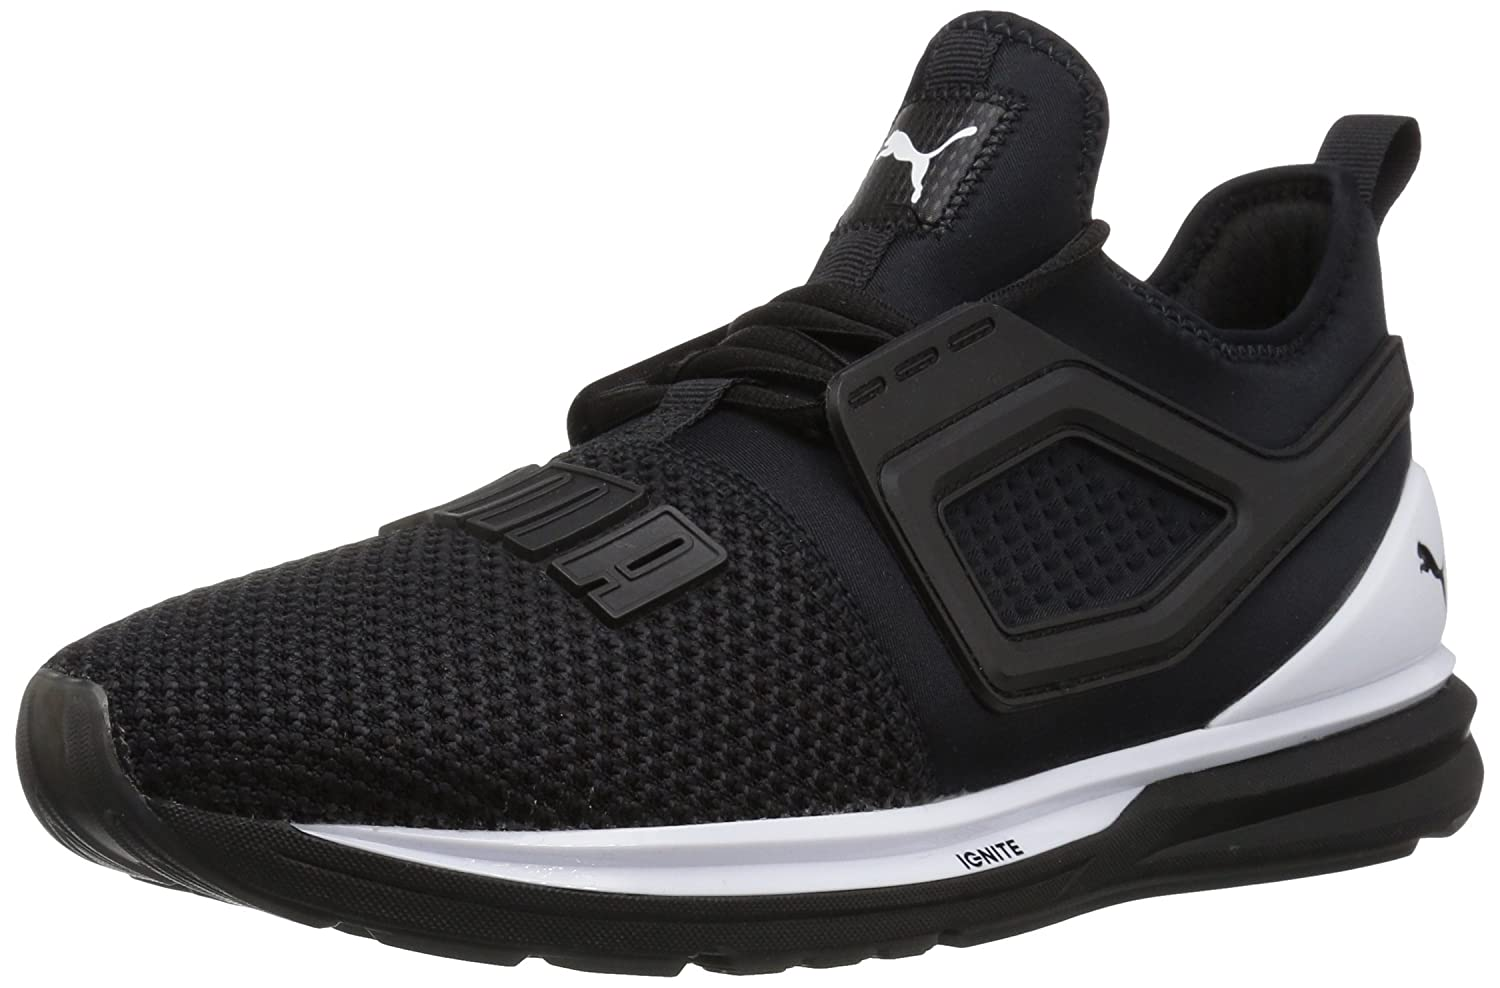 cheap for discount e926d f2c0e PUMA Men's Ignite Limitless Sneaker